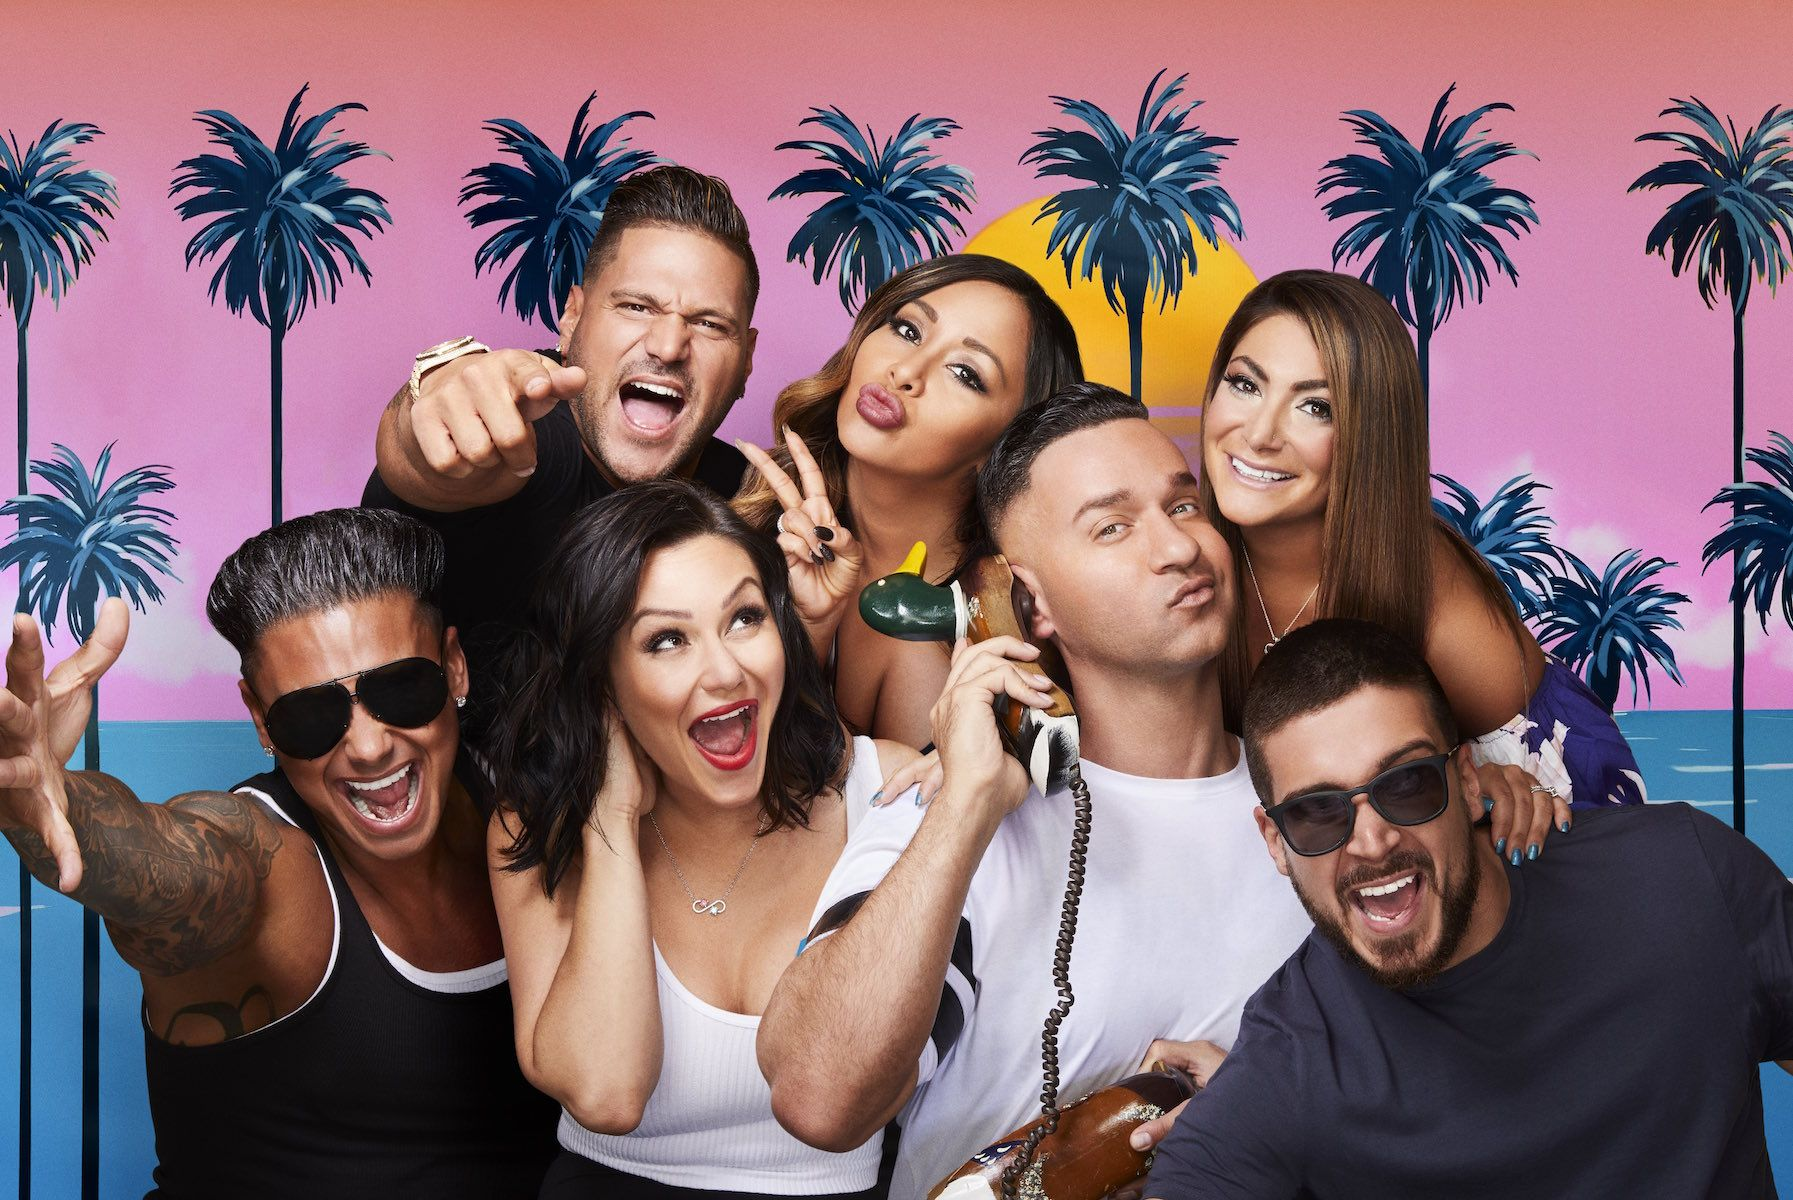 jersey shore family vacation online stream free